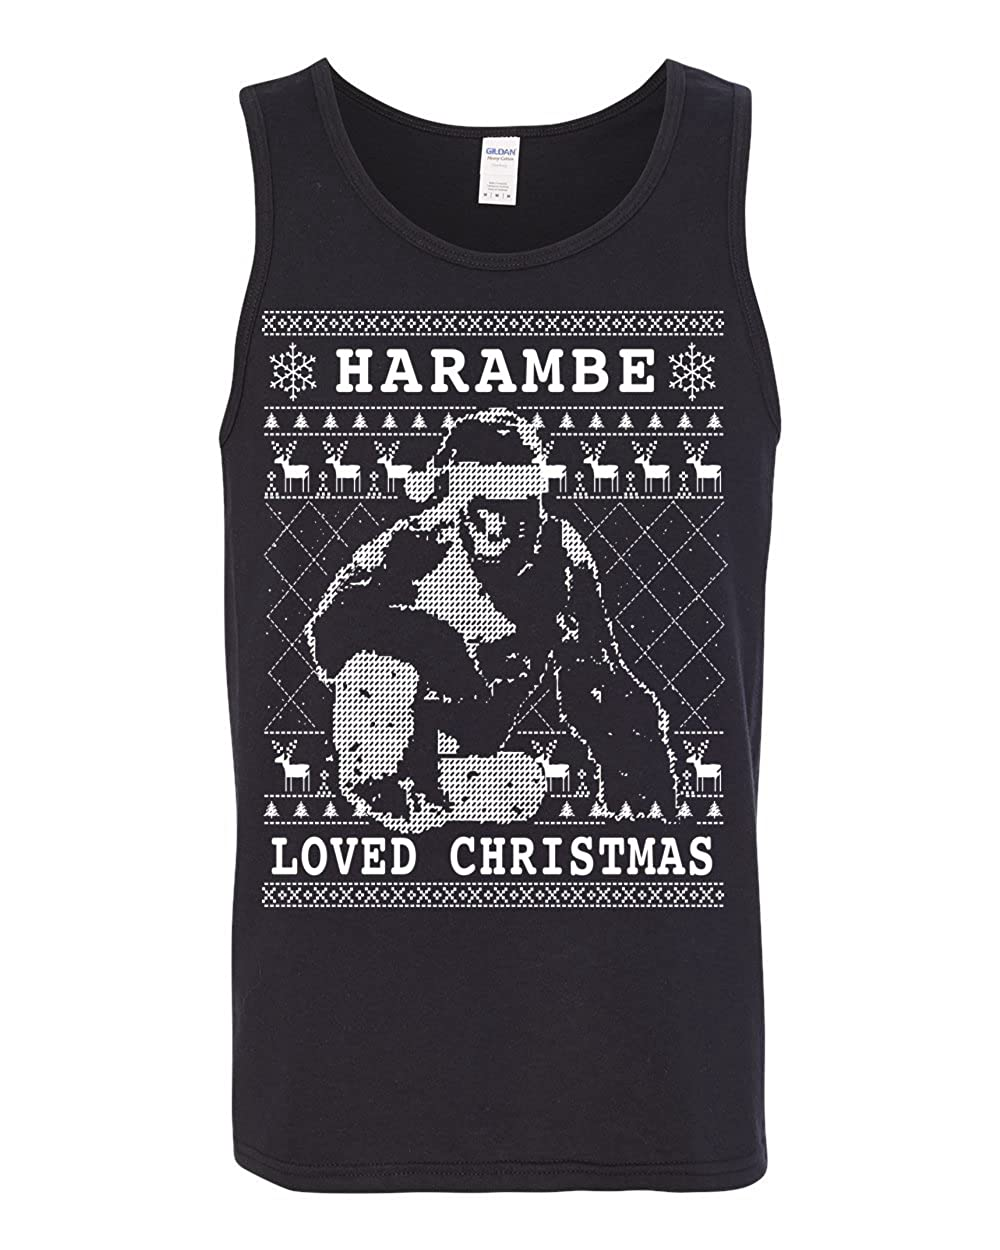 Mens Ugly Christmas Fashion Graphic Tank Top Wild Bobby Harambe Loved Christmas